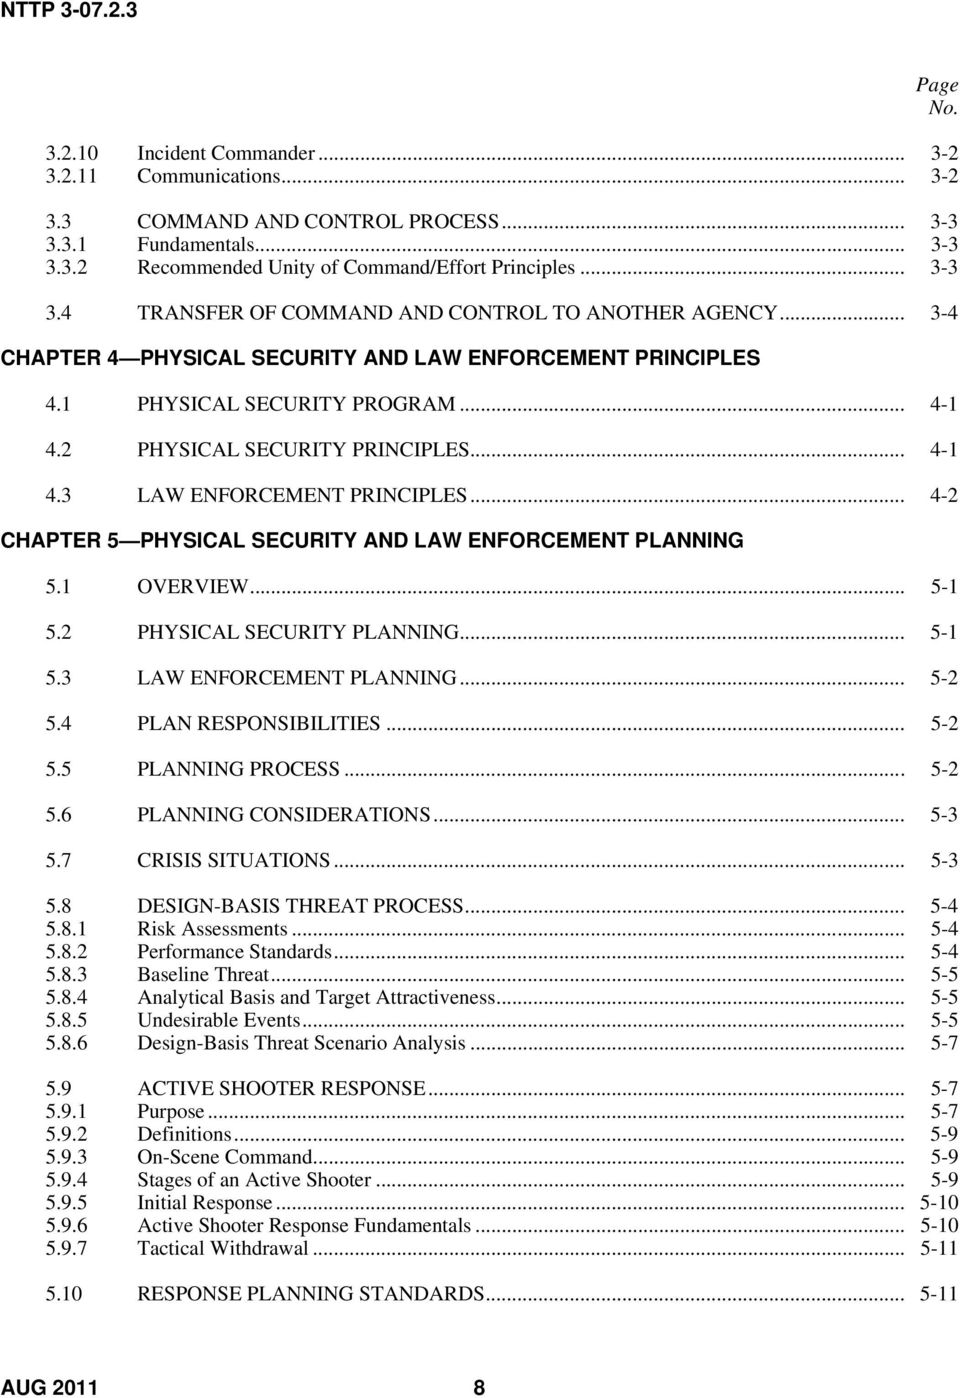 .. 4-2 CHAPTER 5 PHYSICAL SECURITY AND LAW ENFORCEMENT PLANNING 5.1 OVERVIEW... 5-1 5.2 PHYSICAL SECURITY PLANNING... 5-1 5.3 LAW ENFORCEMENT PLANNING... 5-2 5.4 PLAN RESPONSIBILITIES... 5-2 5.5 PLANNING PROCESS.